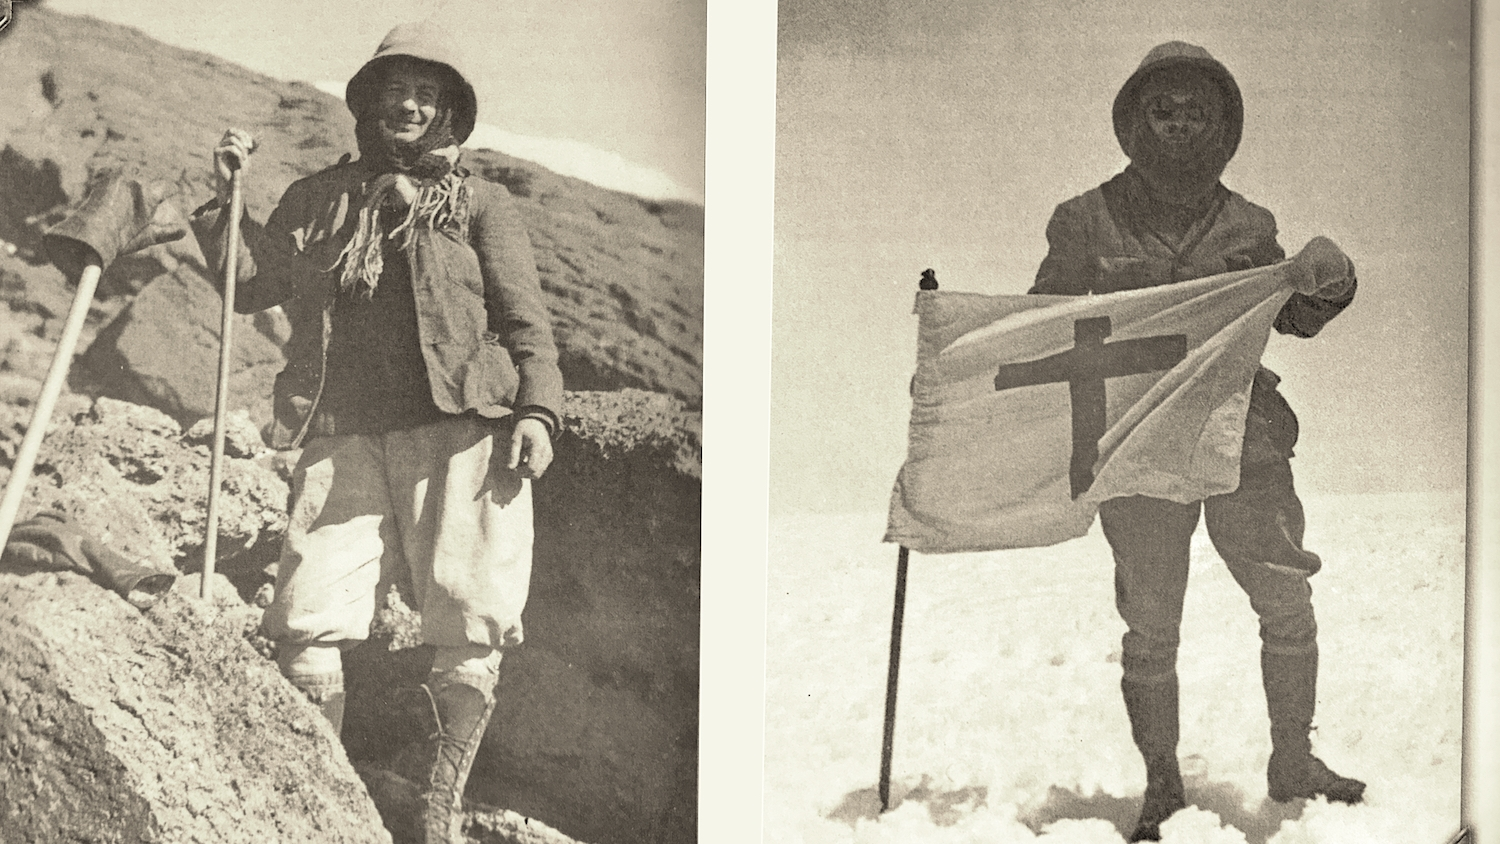 According to the register, Reusch was the 7th European to climb Kilimanjaro's Kibo Peak. He returned two more times in 1926. Rather than plant a national flag, he preferred a Christian symbol.